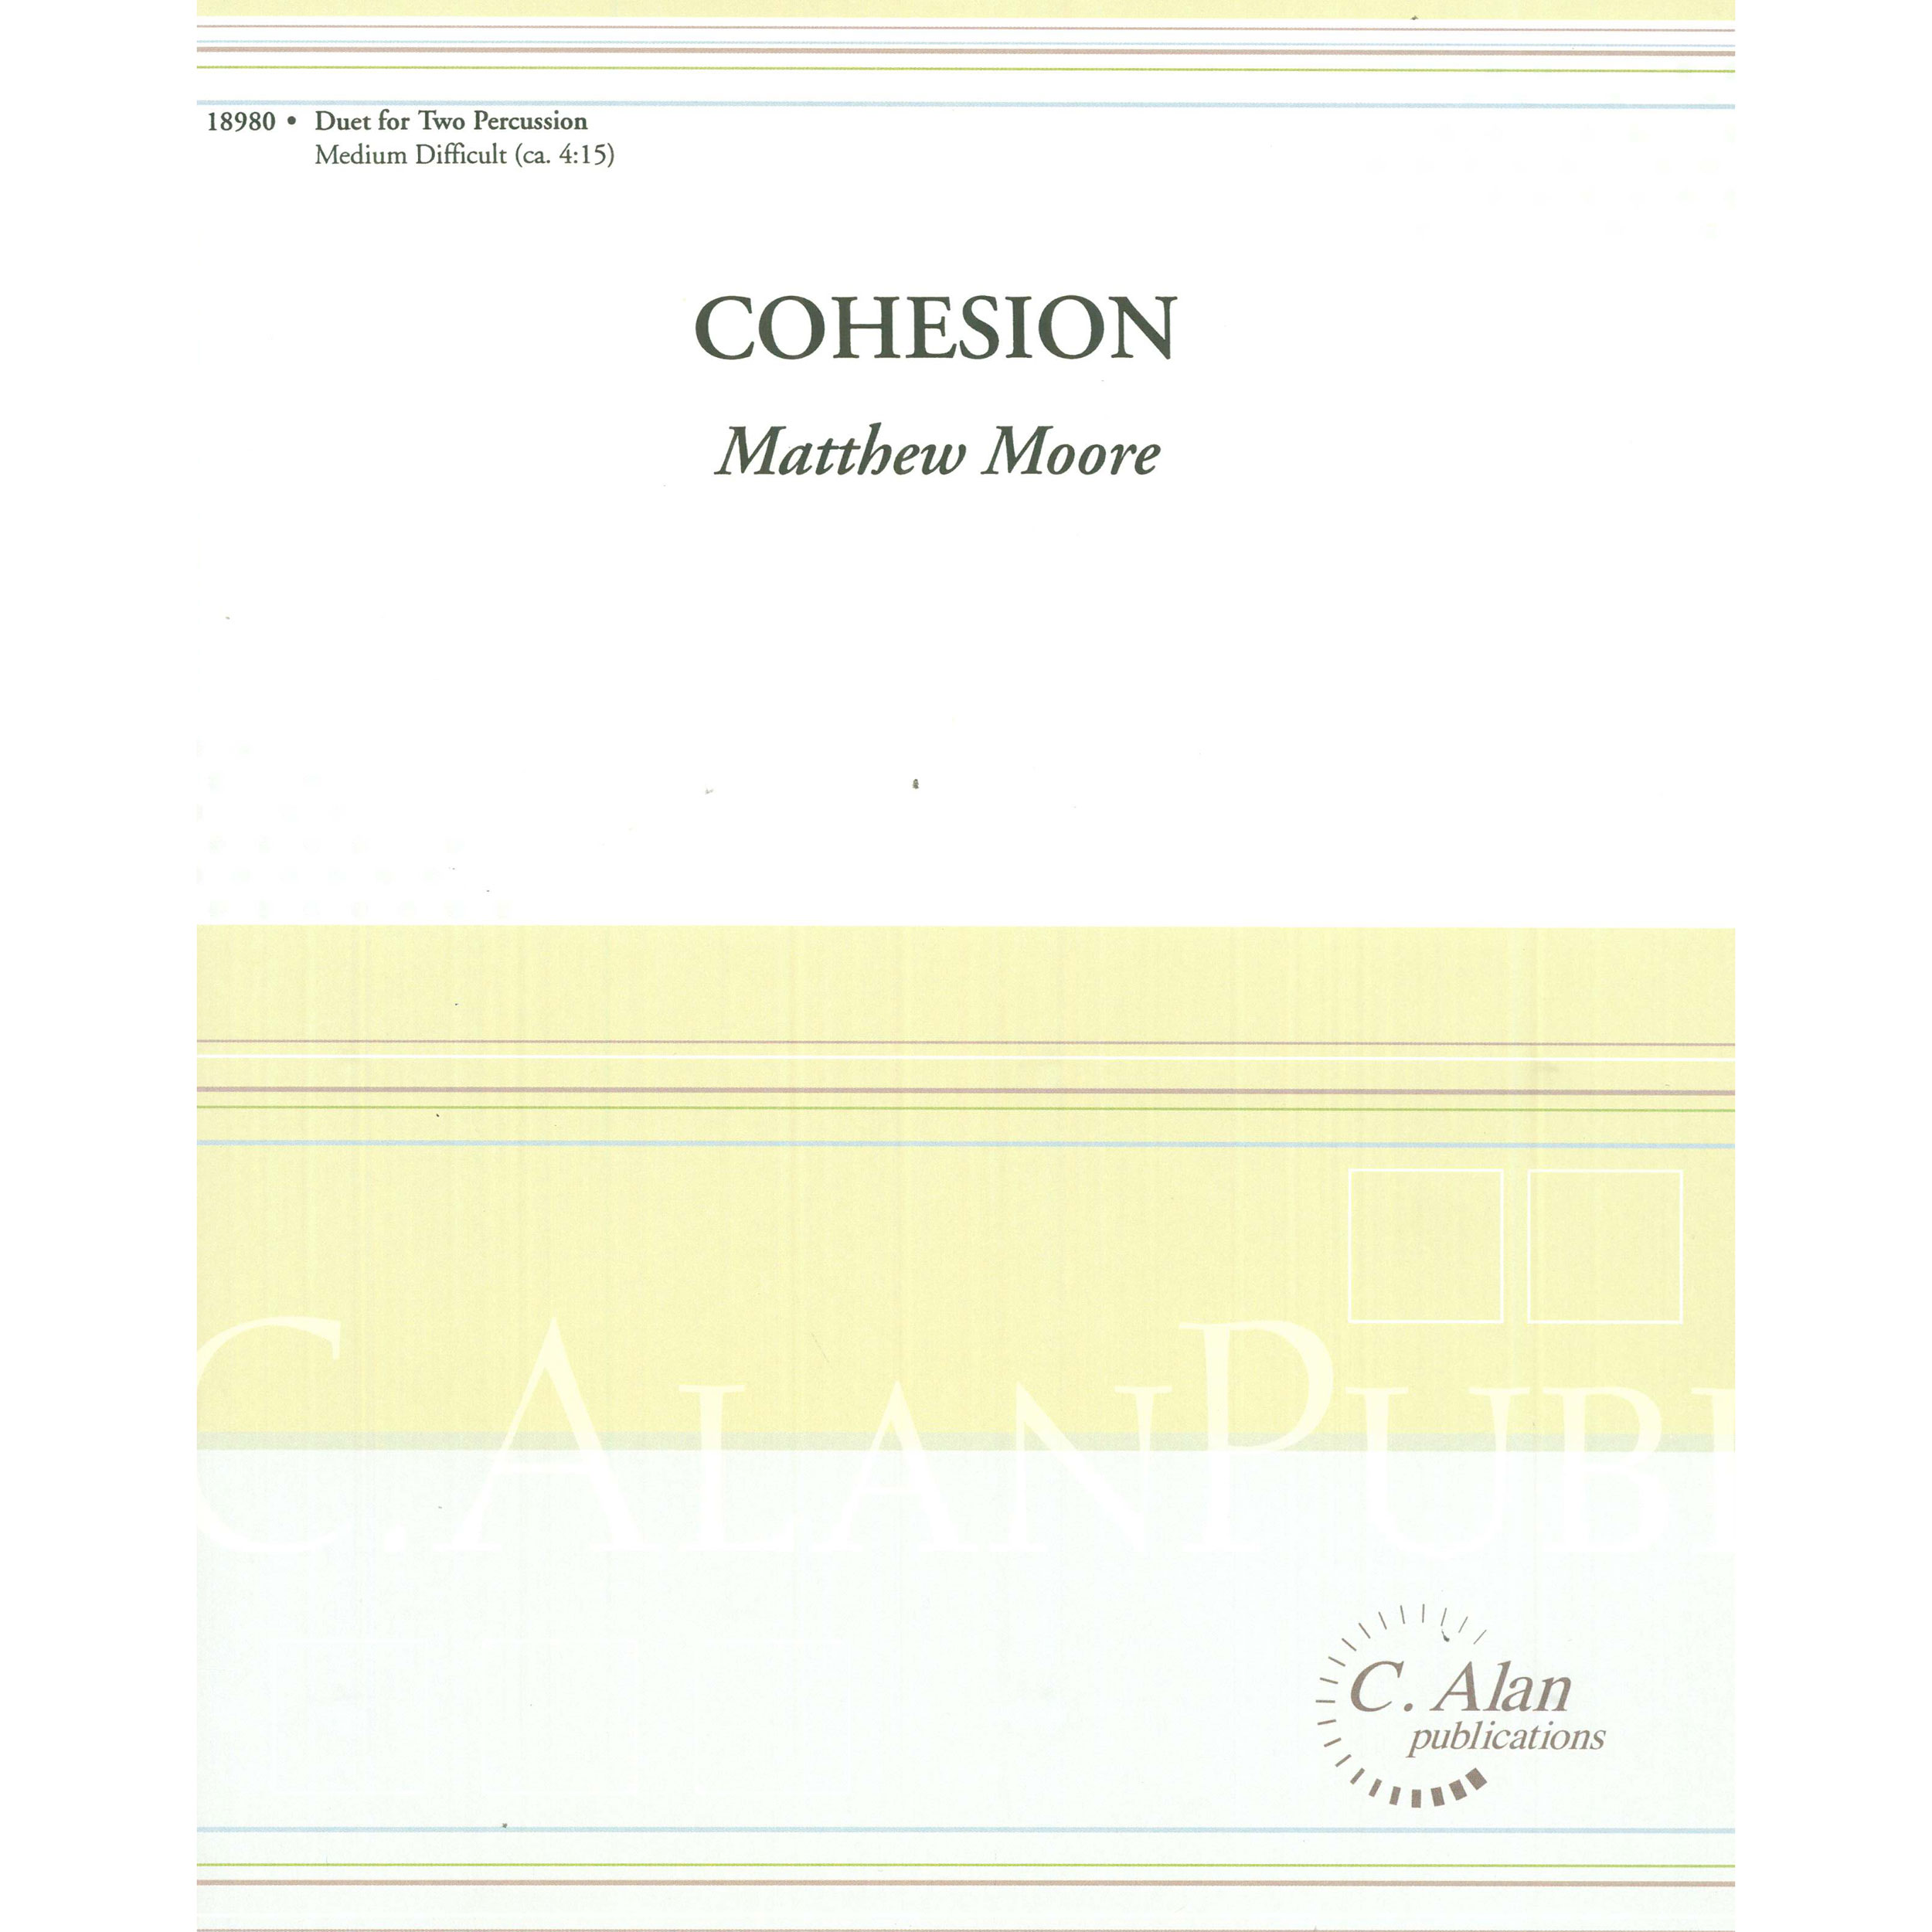 Cohesion by Matt Moore